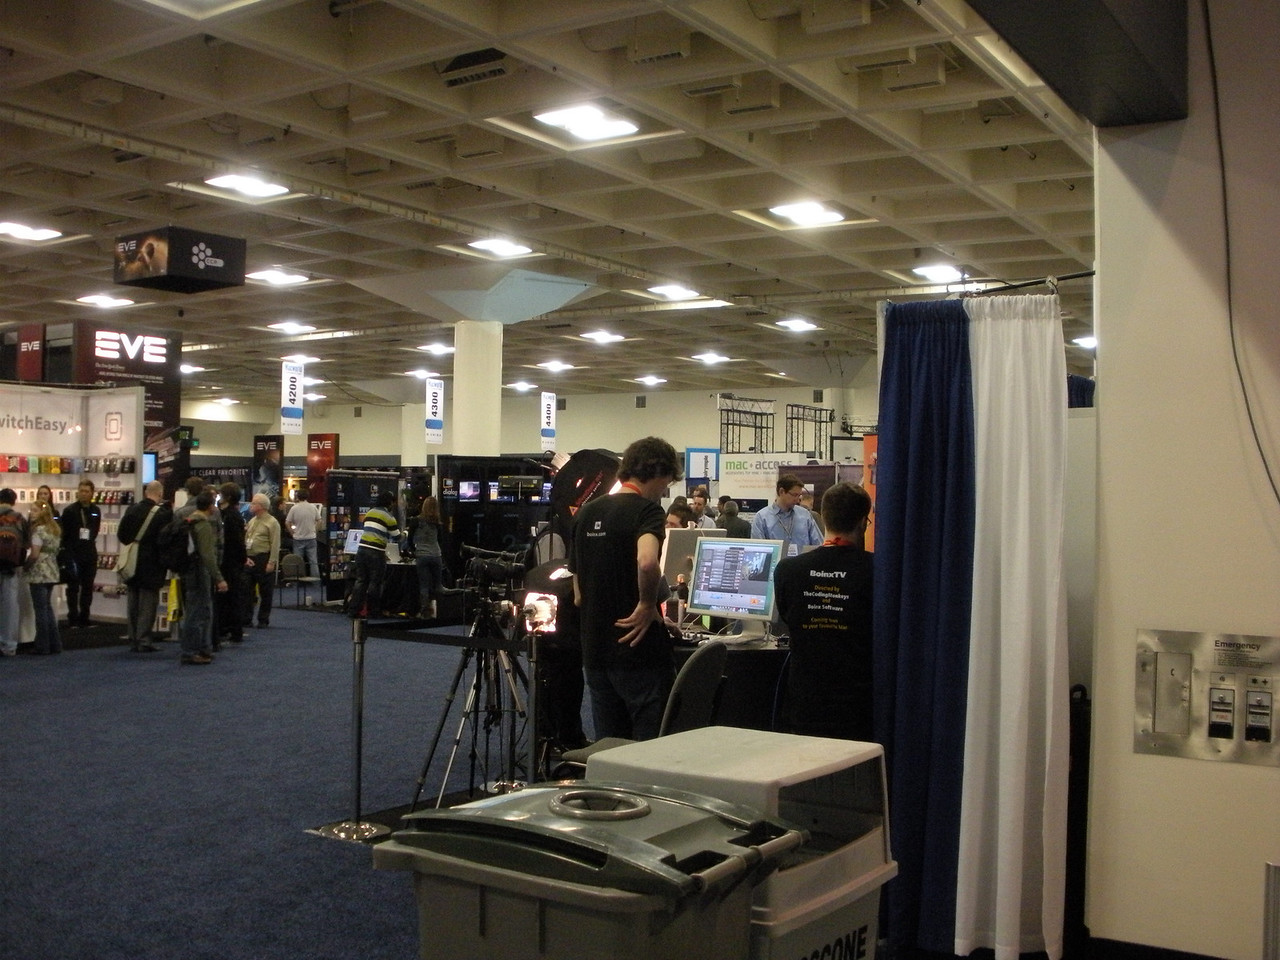 The Boinx booth.